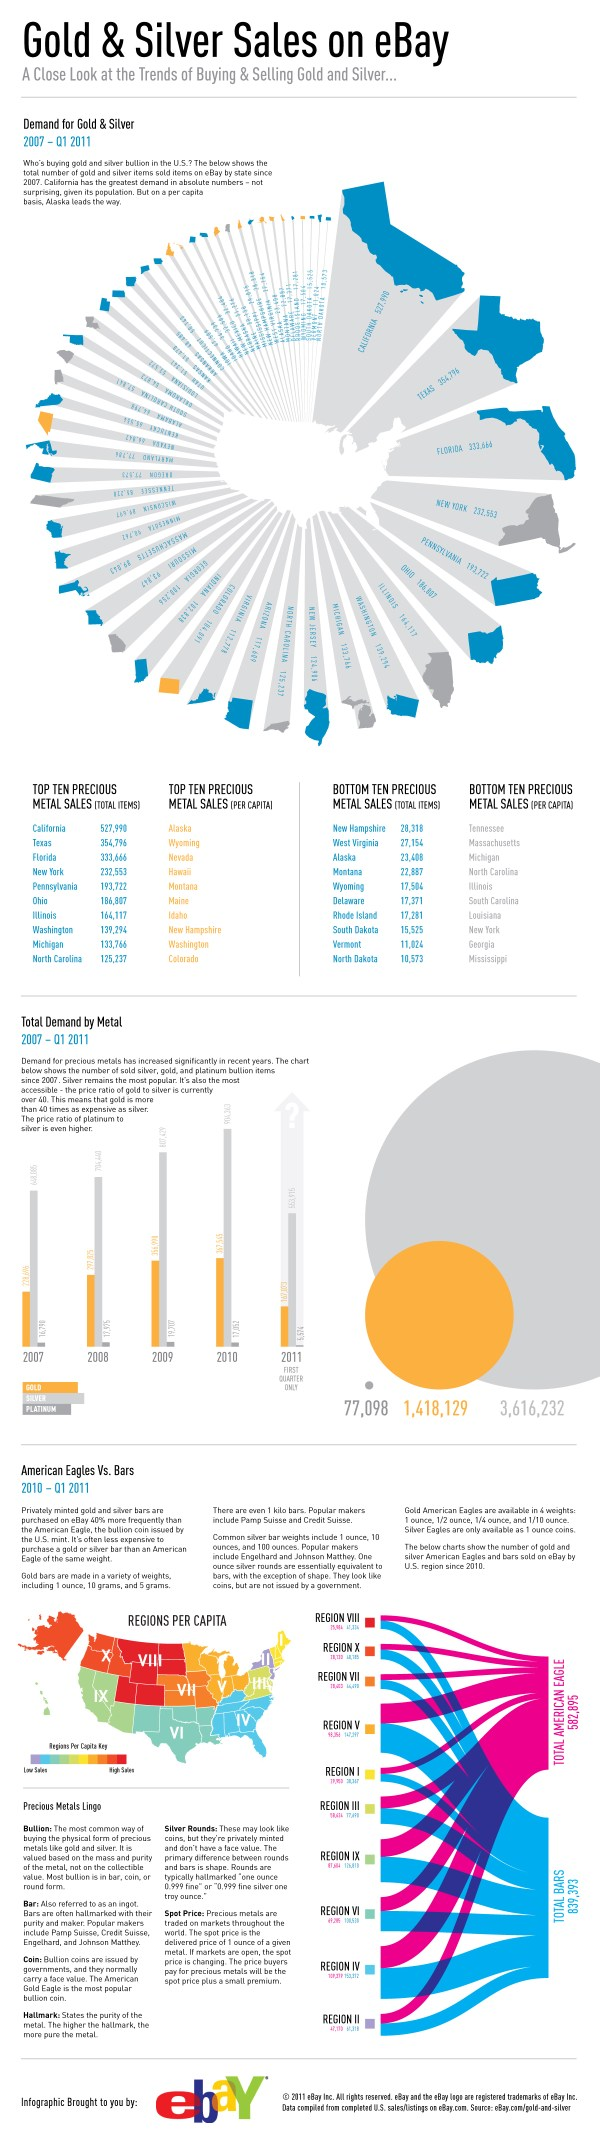 Infographic: Gold & Silver Sales on eBay